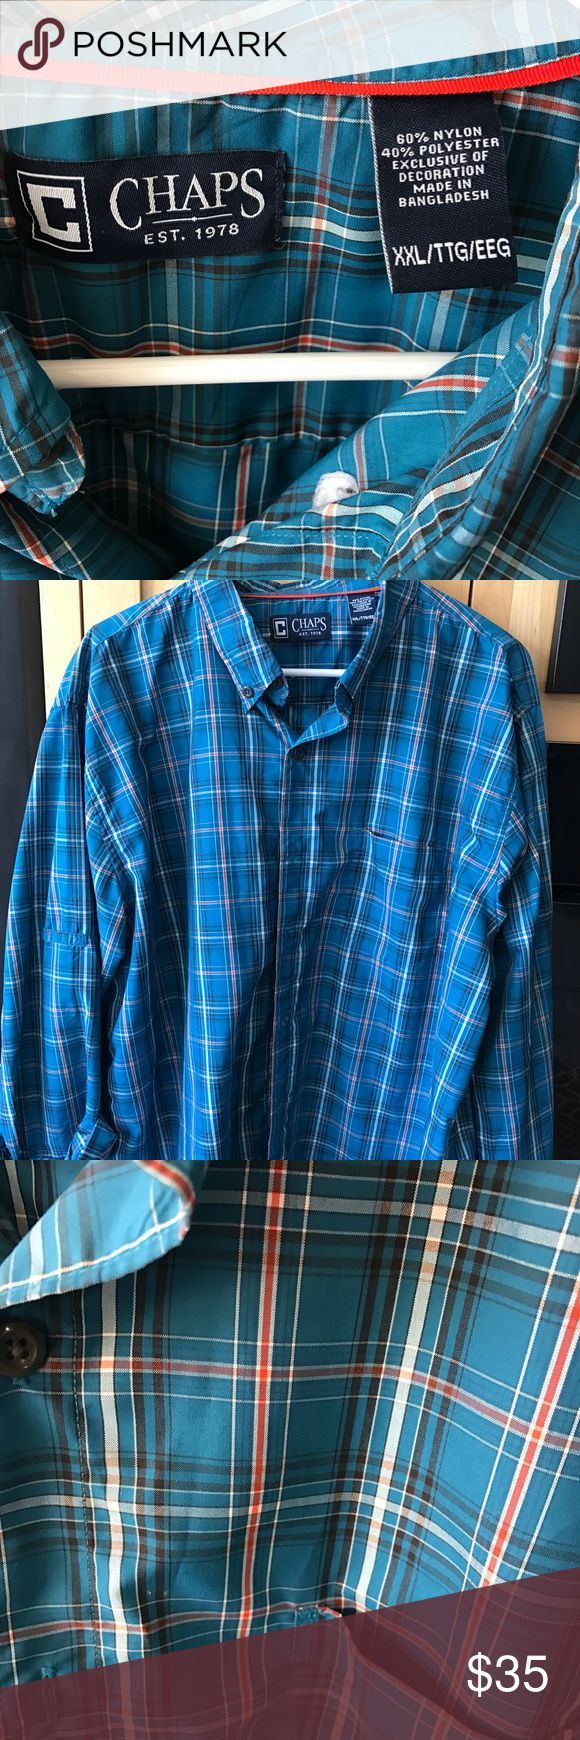 Chaps shirt Ralph Lauren Chaps button down shirt. Worn once. Laundered. The photo number one and number three depict the color of the shirt the best. It is more of a greenish turquoise. Orange stripes throughout. Chaps Shirts Casual Button Down Shirts